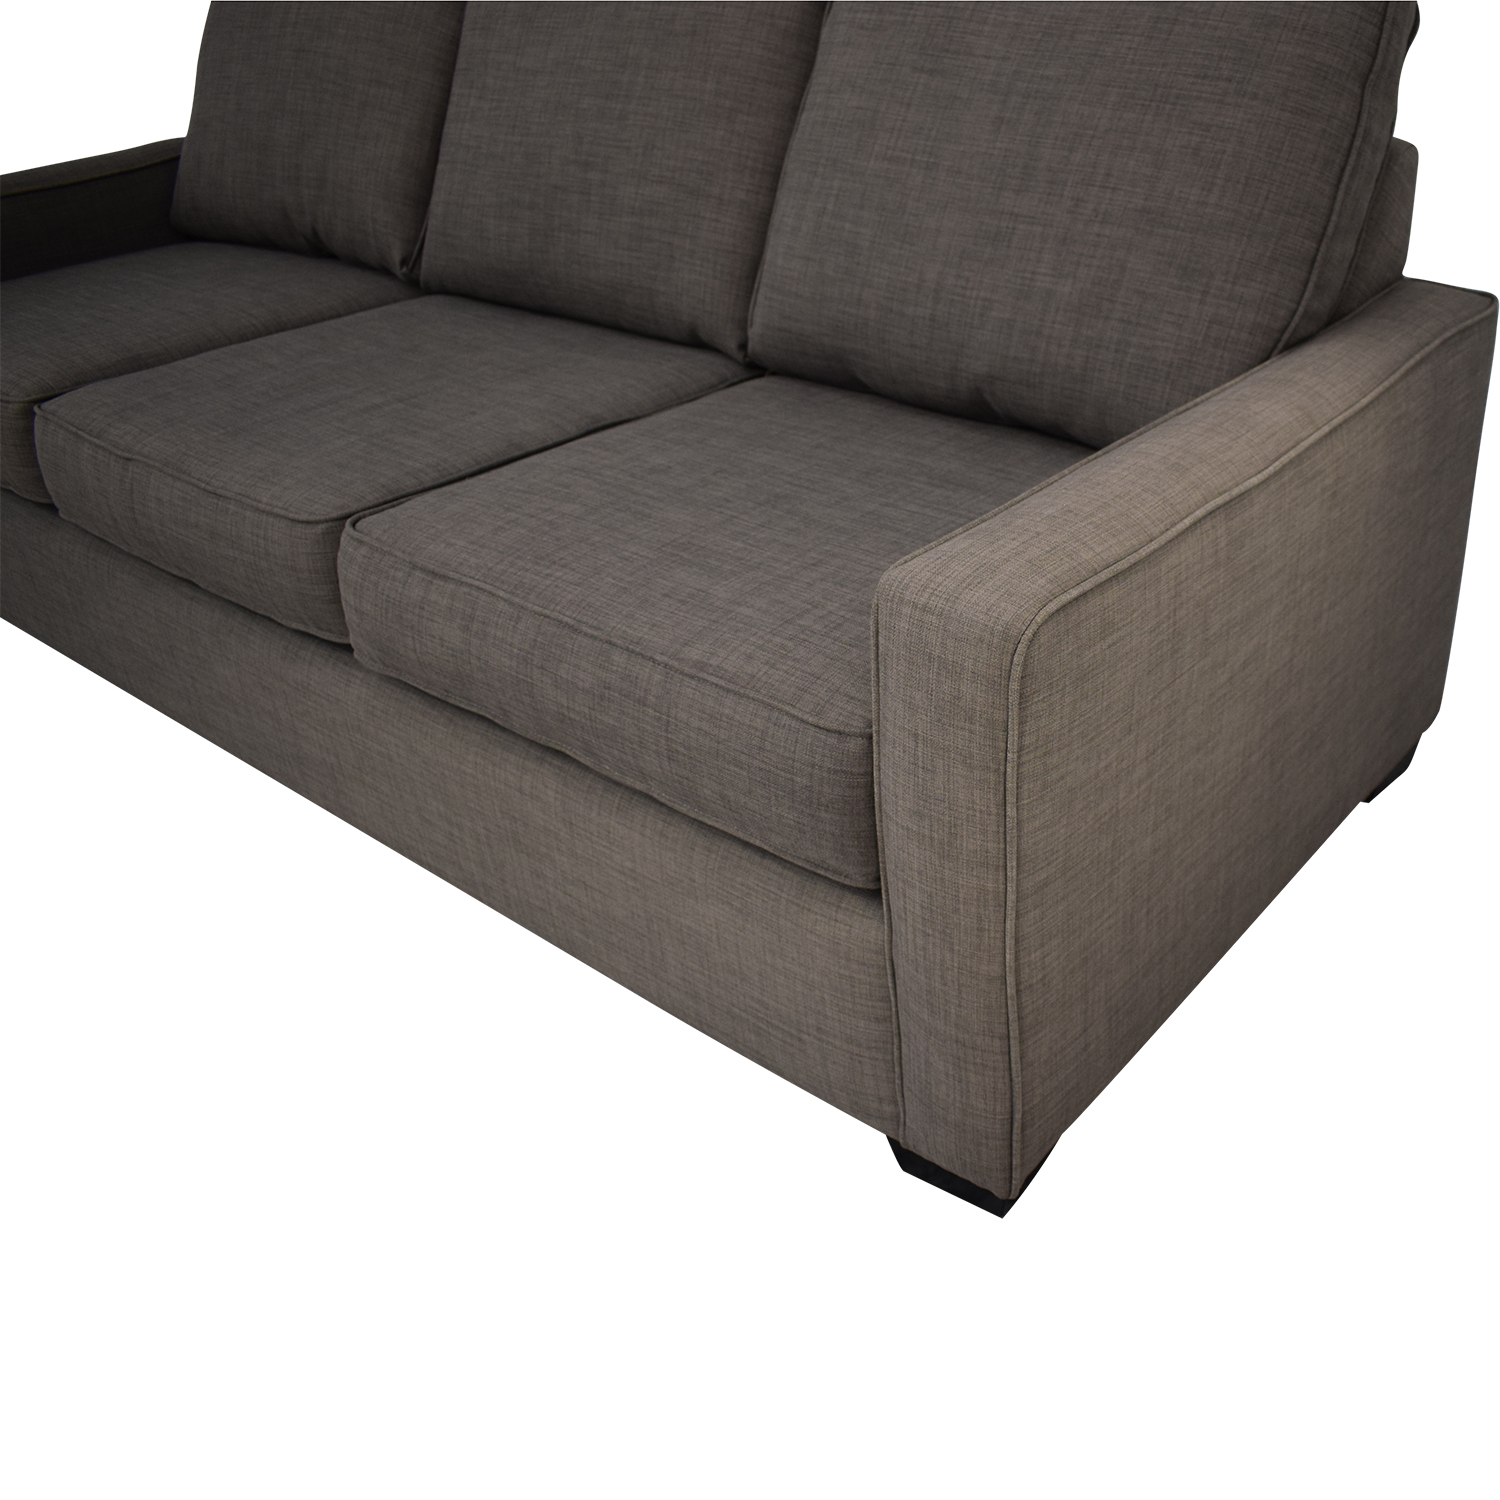 A1 Design Sofa dimensions